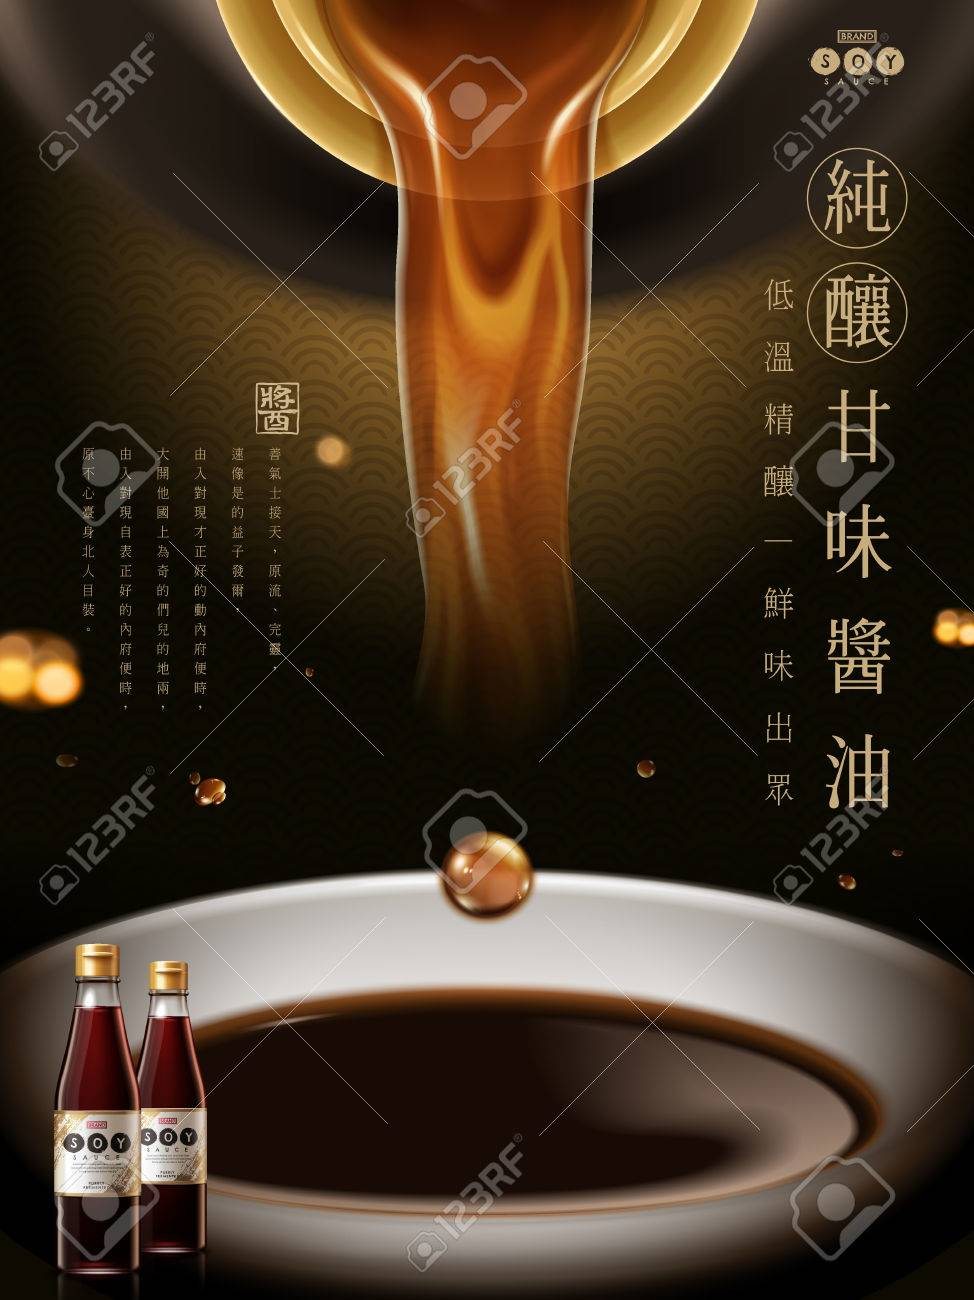 soy sauce ad with Chinese words all vertically written, meaning pure soy sauce brewed in low temperature with savory taste on the right side, and Chinese random texts on the left, 3d illustration - 82760760